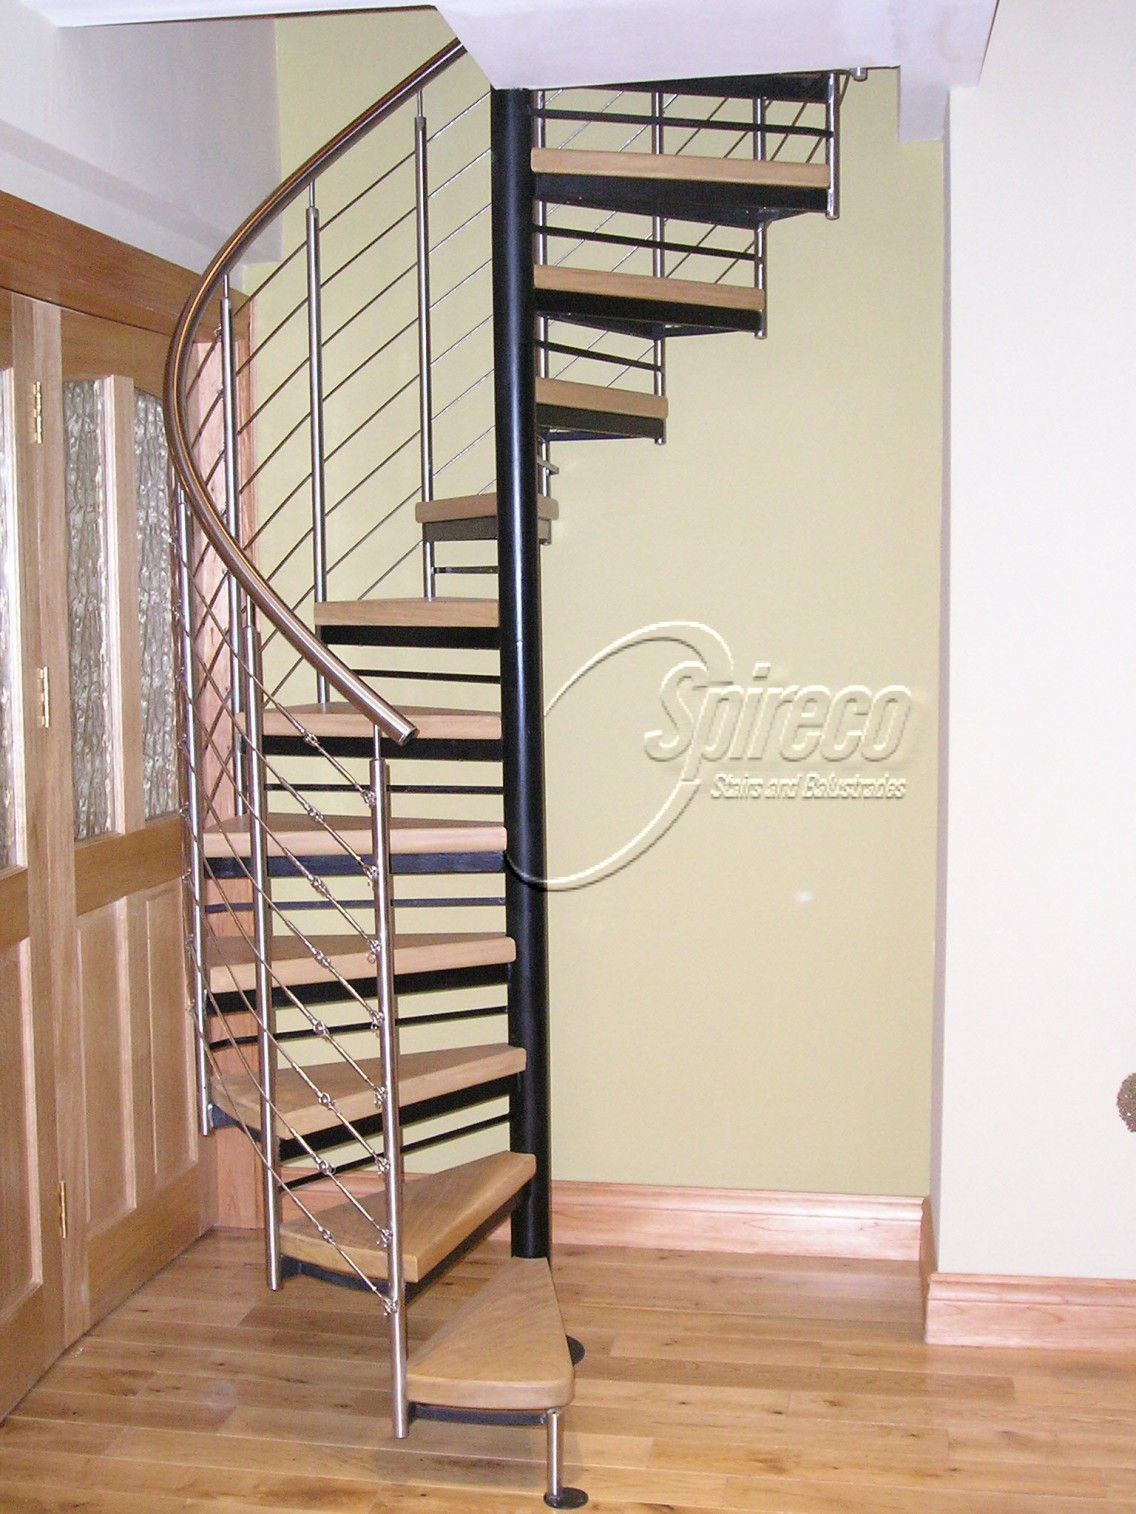 Attic Spiral Stairs Spireco Spiral Stairs